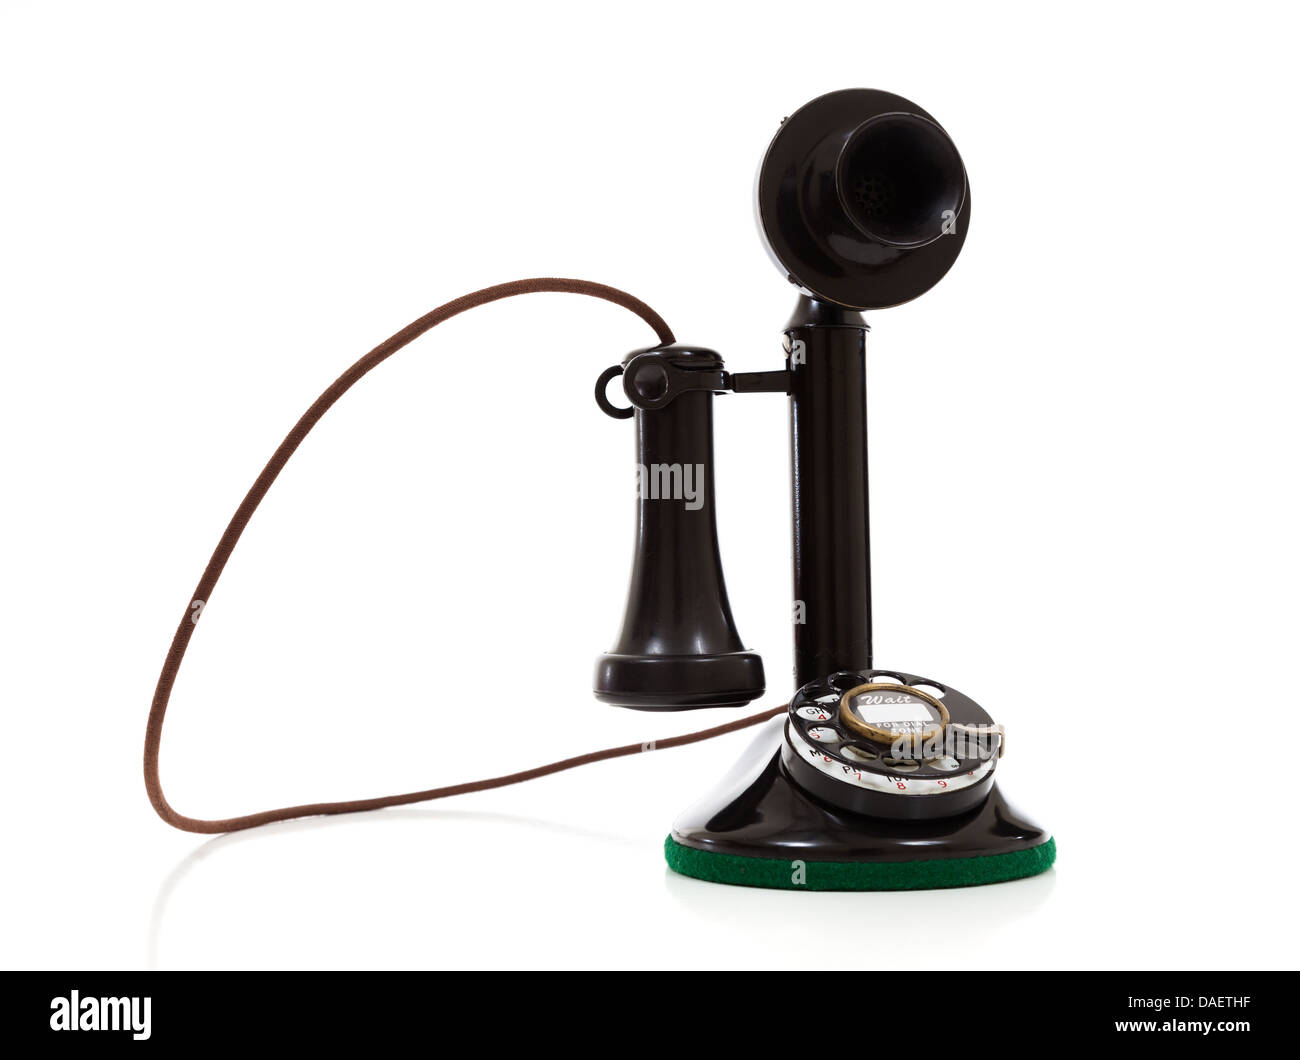 A black vintage candlestick phone on a white background with copy space - Stock Image